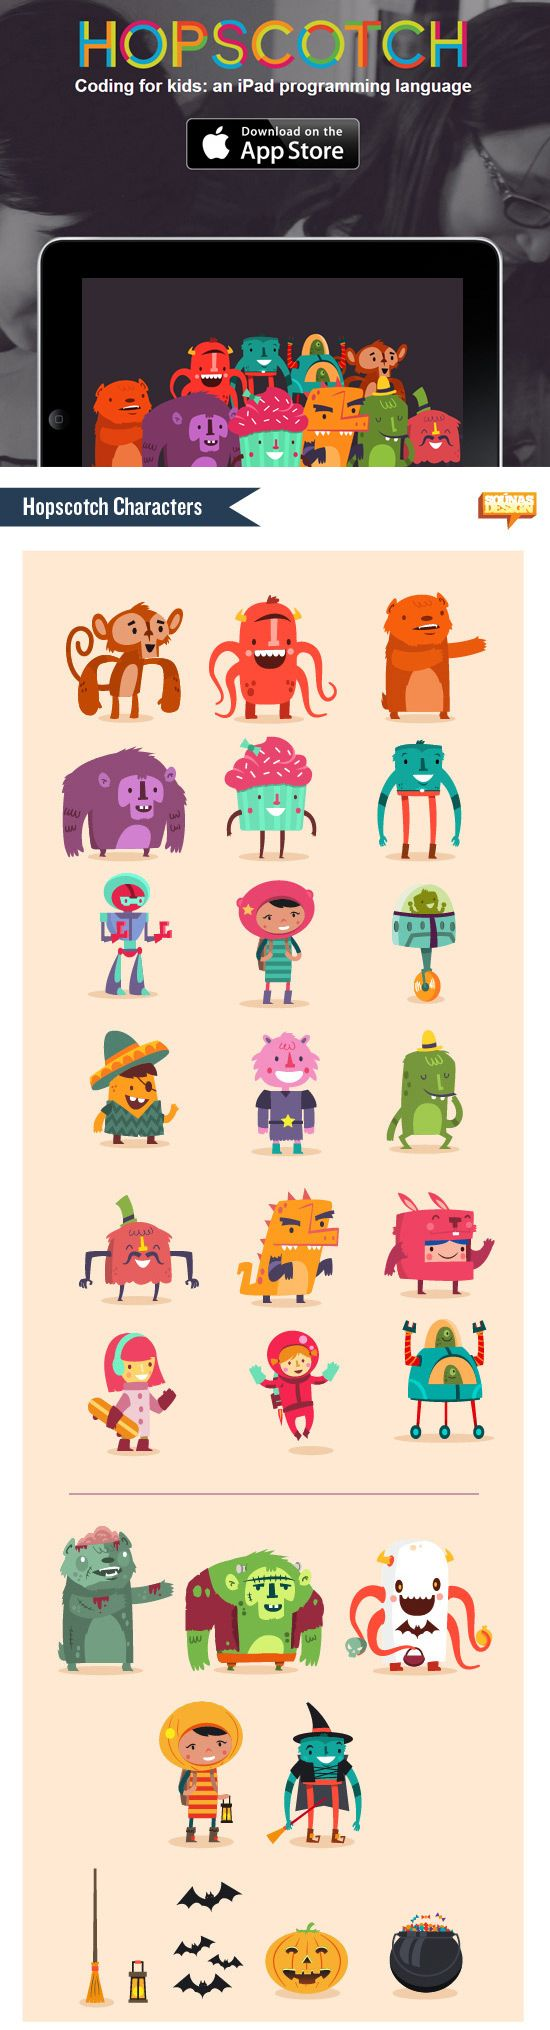 :::Hopscotch characters::: on Behance #graphic #illustration